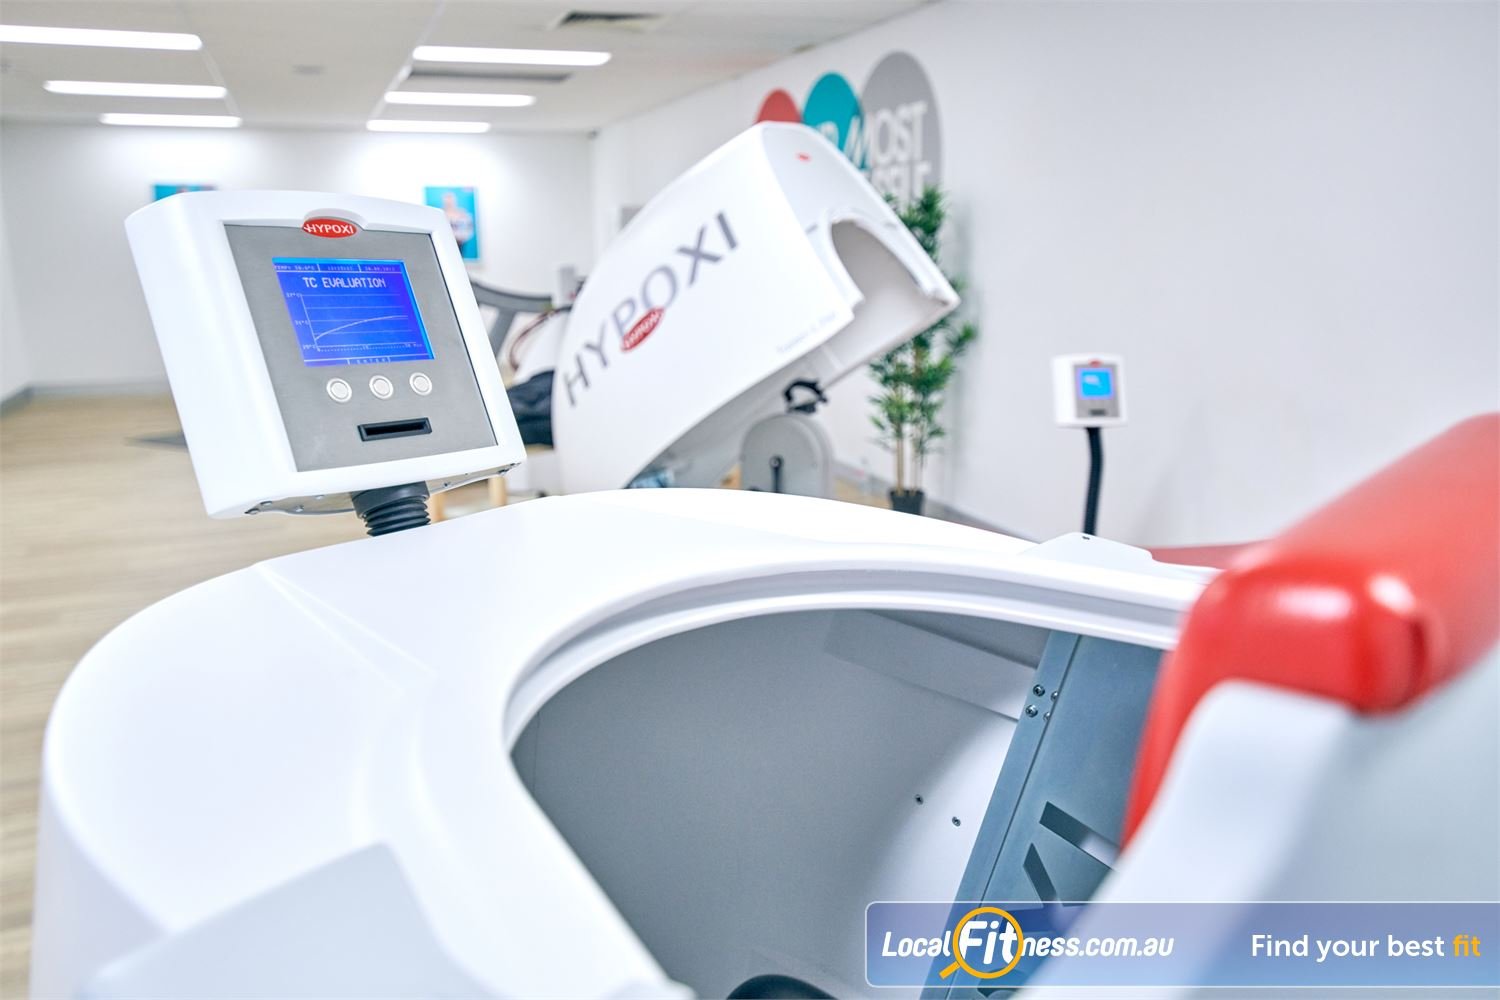 HYPOXI Weight Loss Near Heatherton Our advanced technology provides targeted fat loss in Cheltenham.